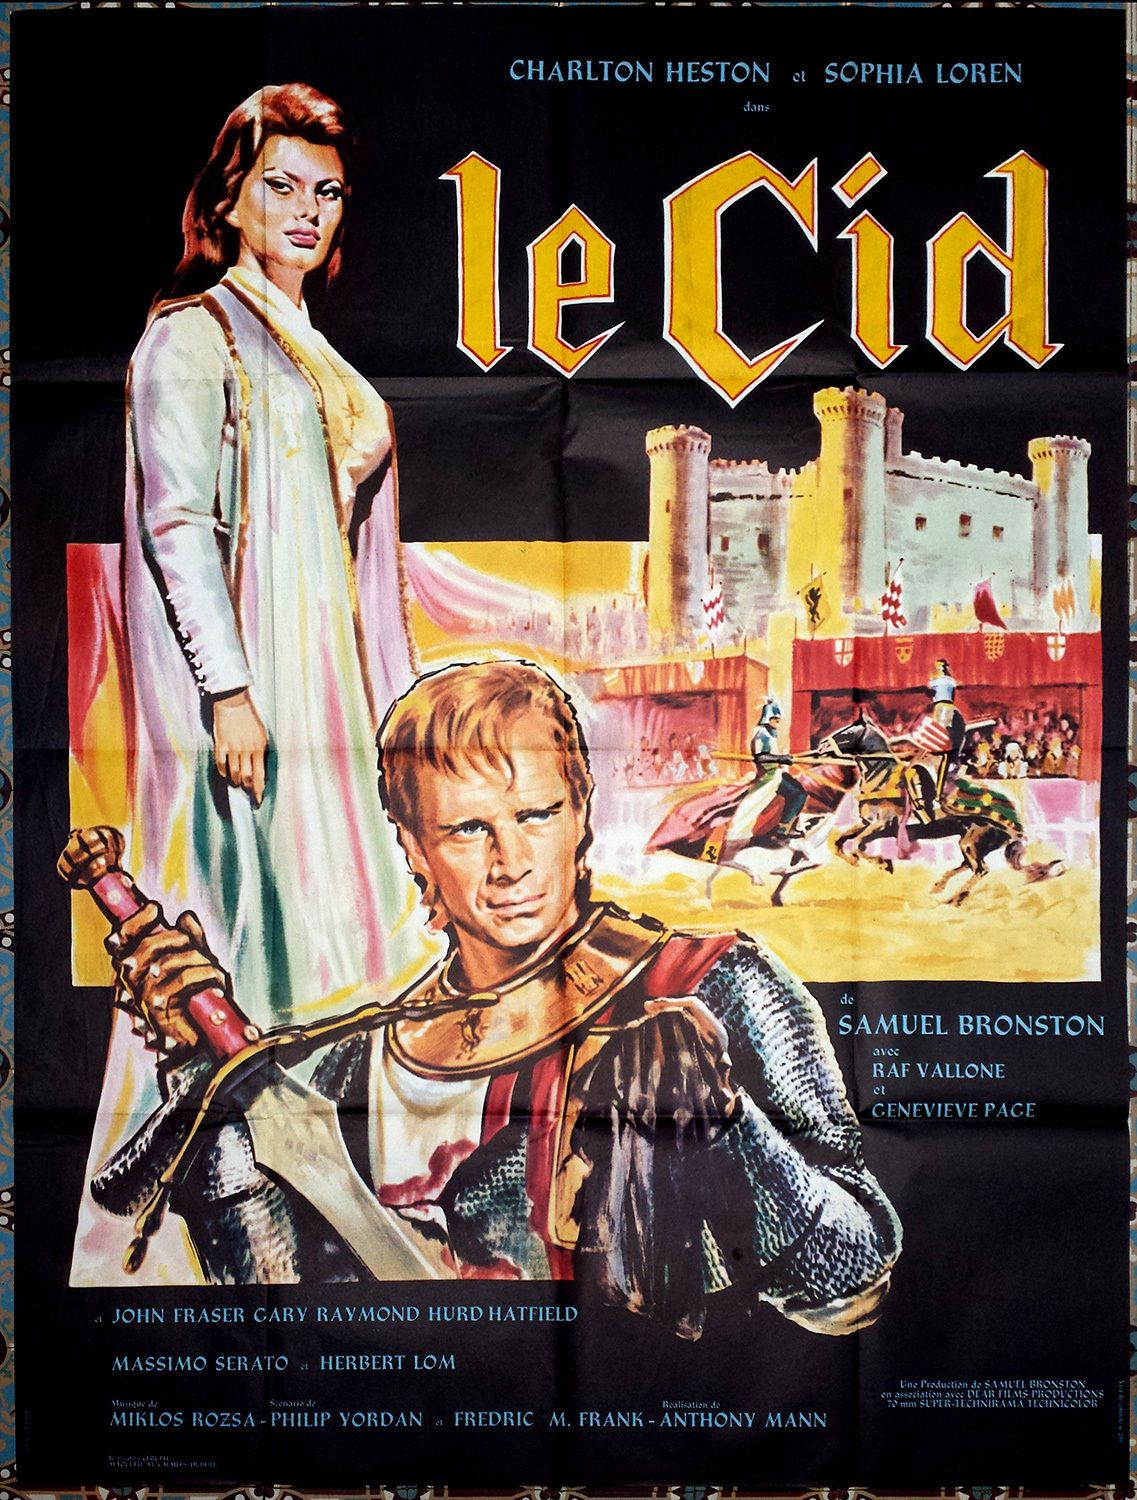 1961 el cid le charlton heston sophia loren 47x63 french